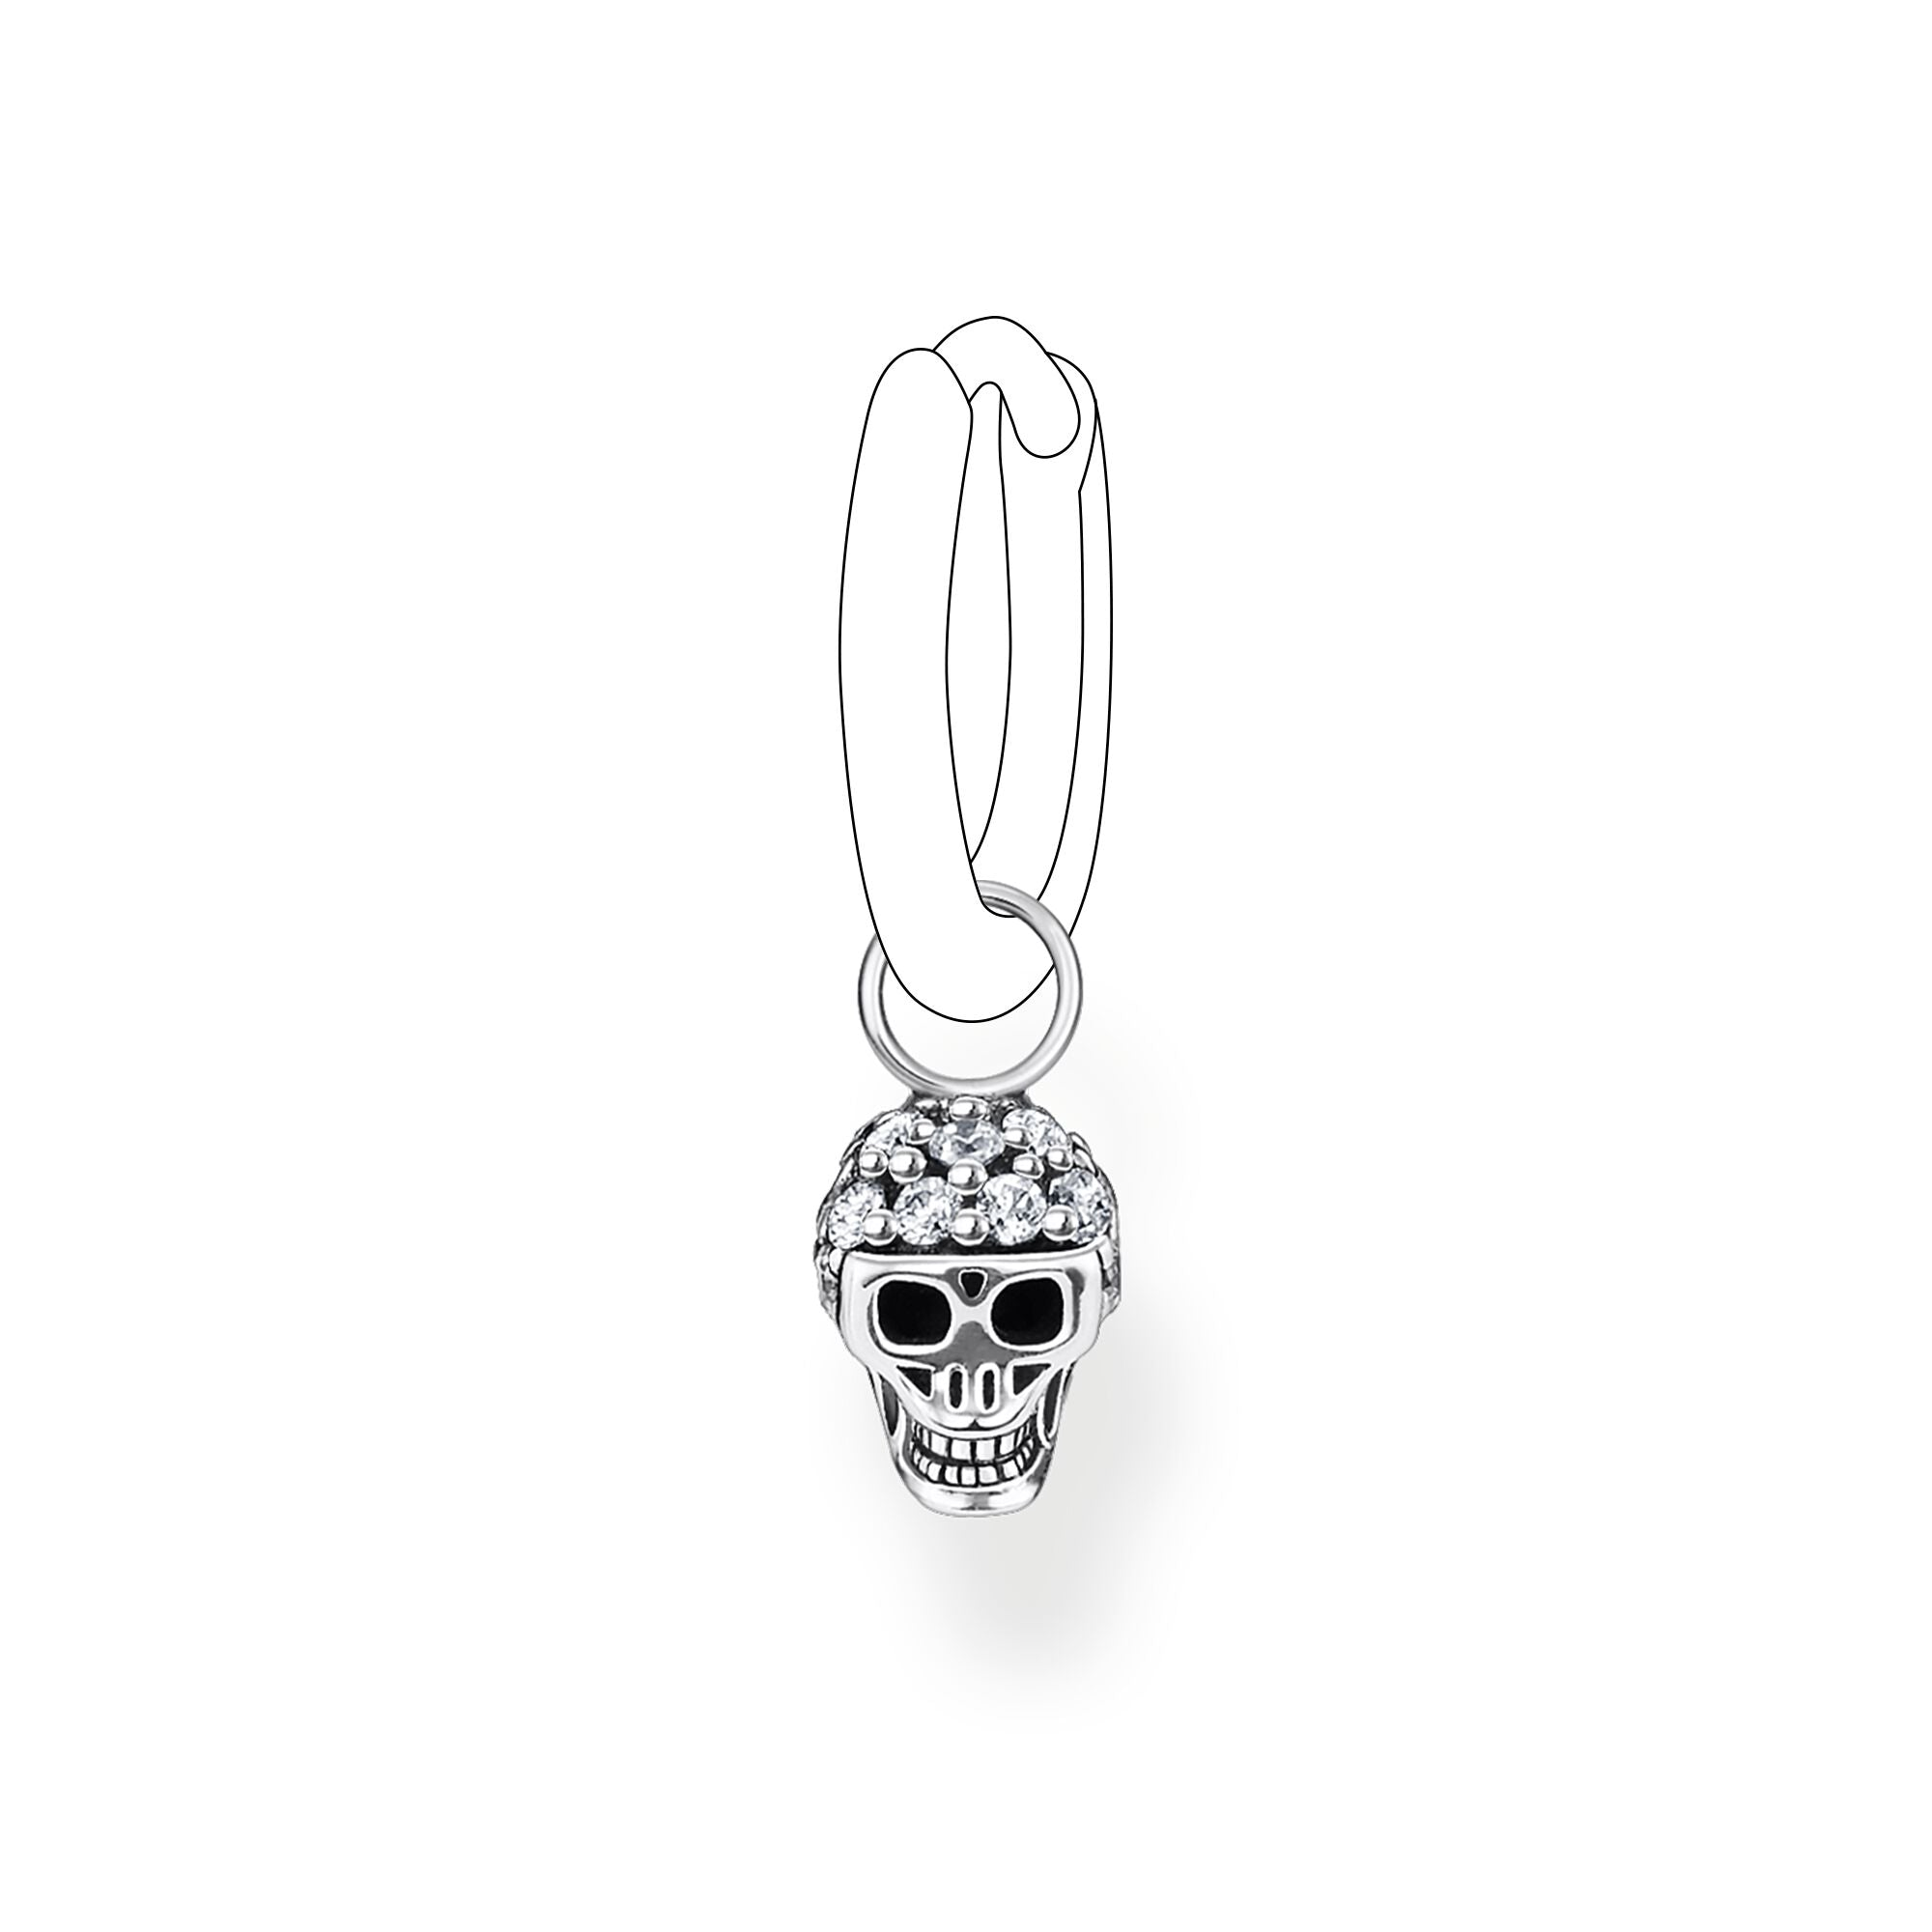 Thomas Sabo, Sterling Silver, Cubic Zirconia, Skull, Single Earring Pendant, Ottawa